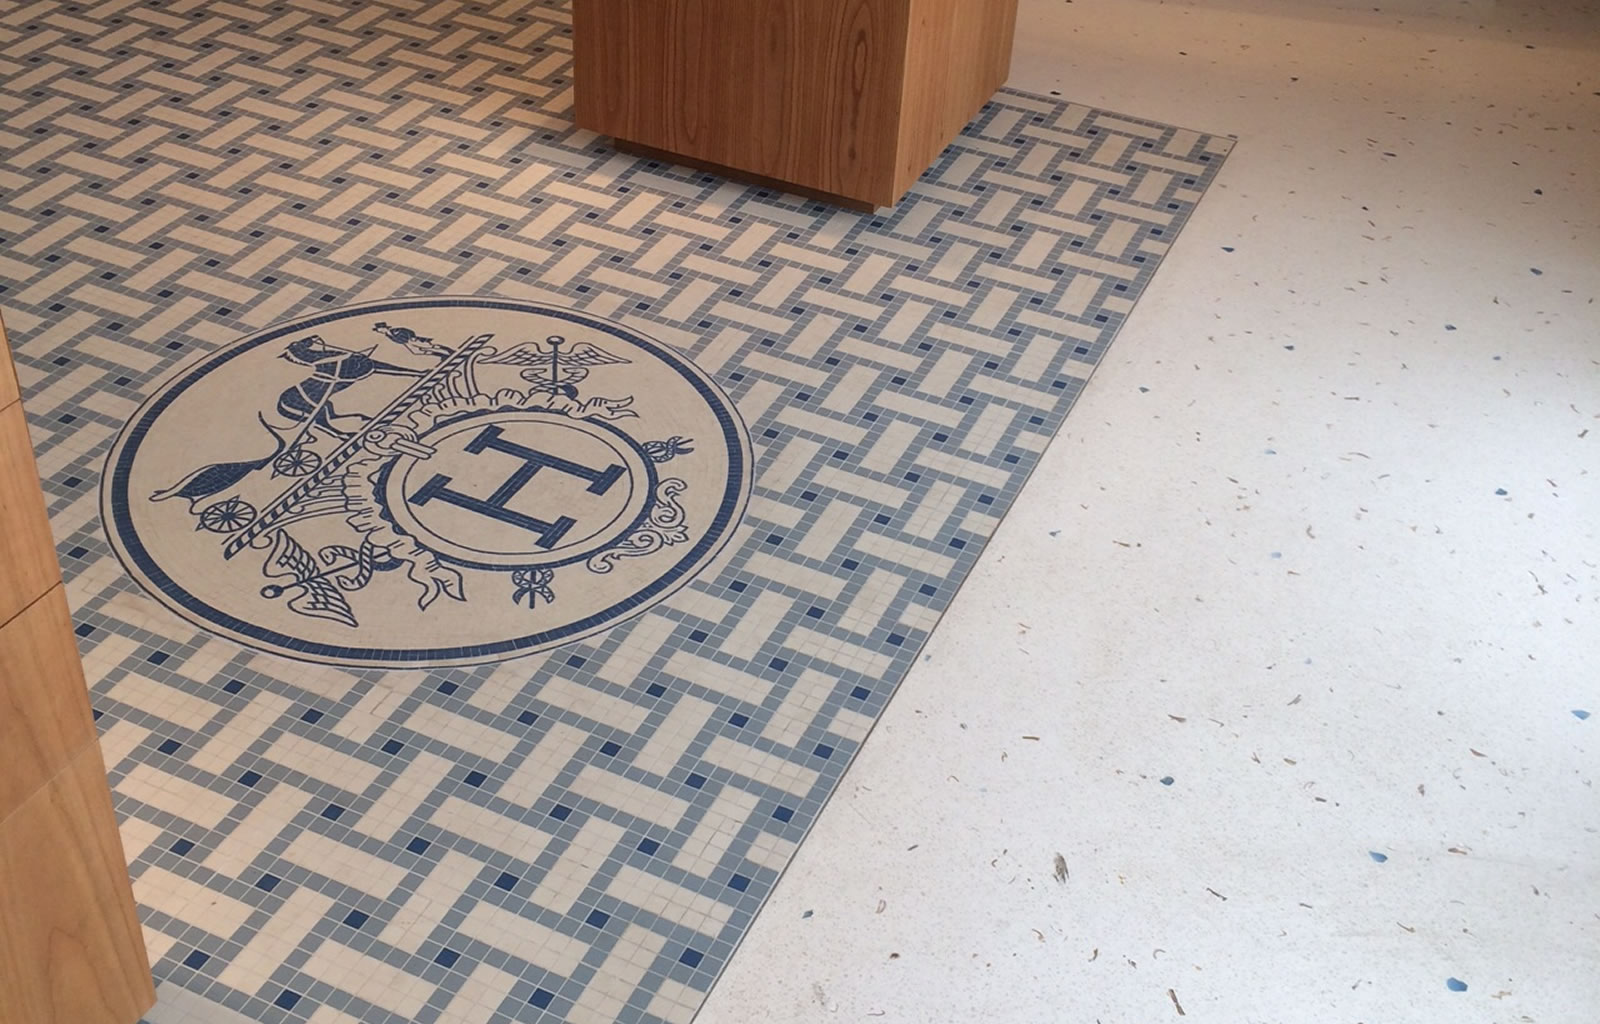 Hermes store in Cannes - Terrazzo floor made with specially selected blue crystals and sea shells -  Terrazzo floor made with specially selected blue crystals and sea shells